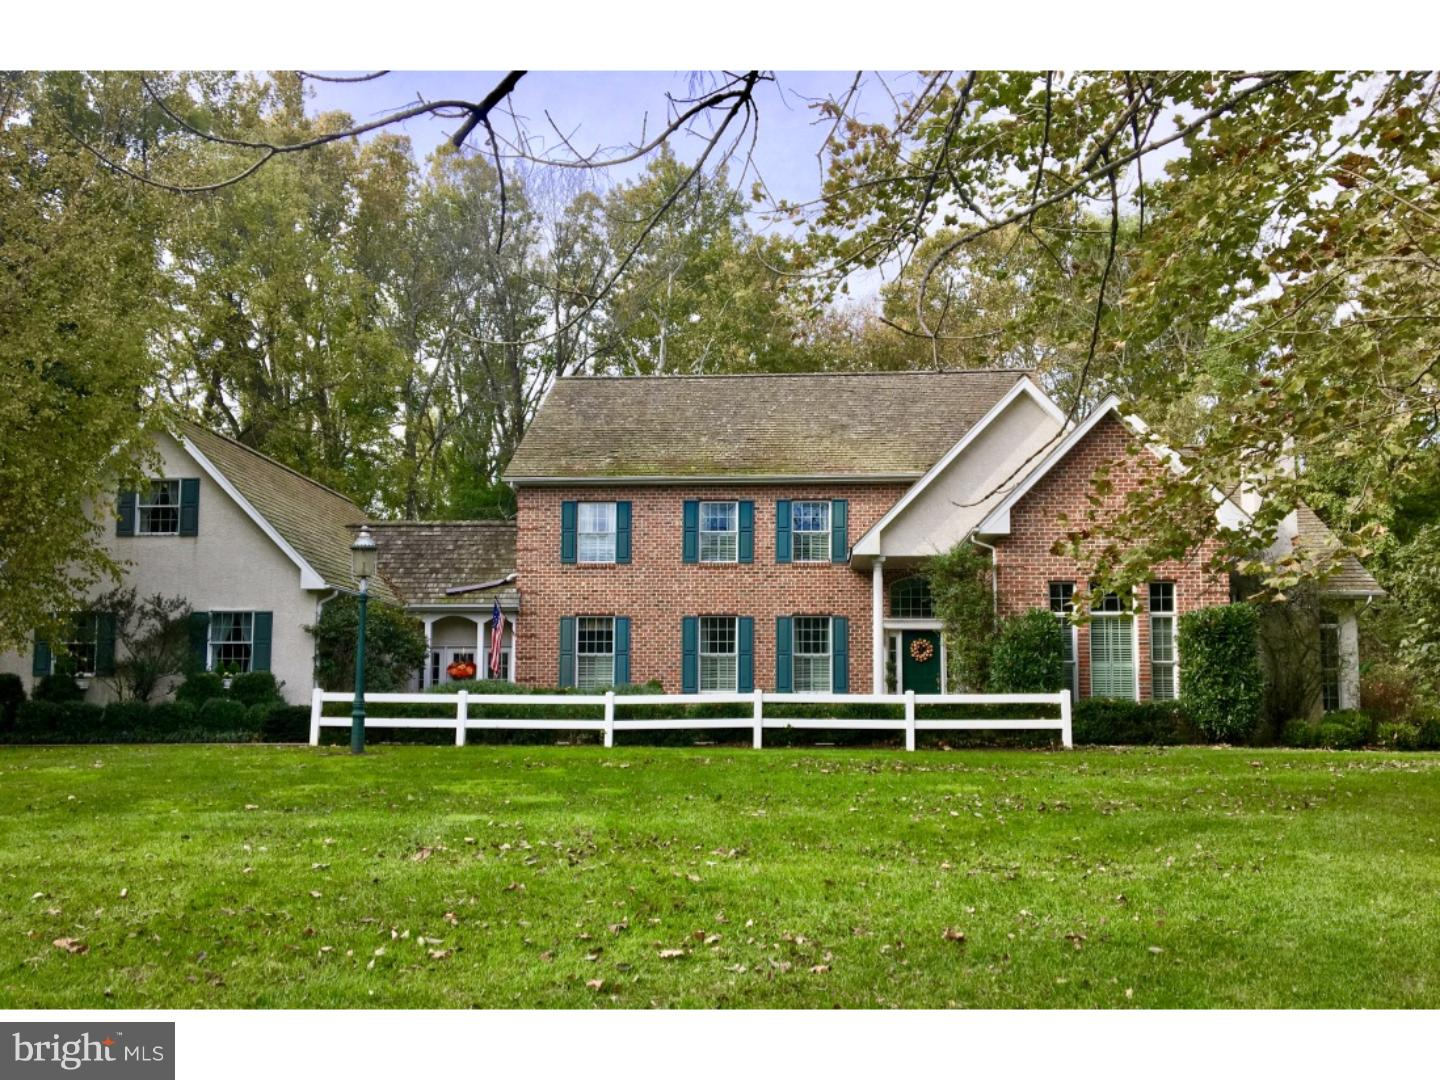 626 CREEK LANE, FLOURTOWN, PA 19031